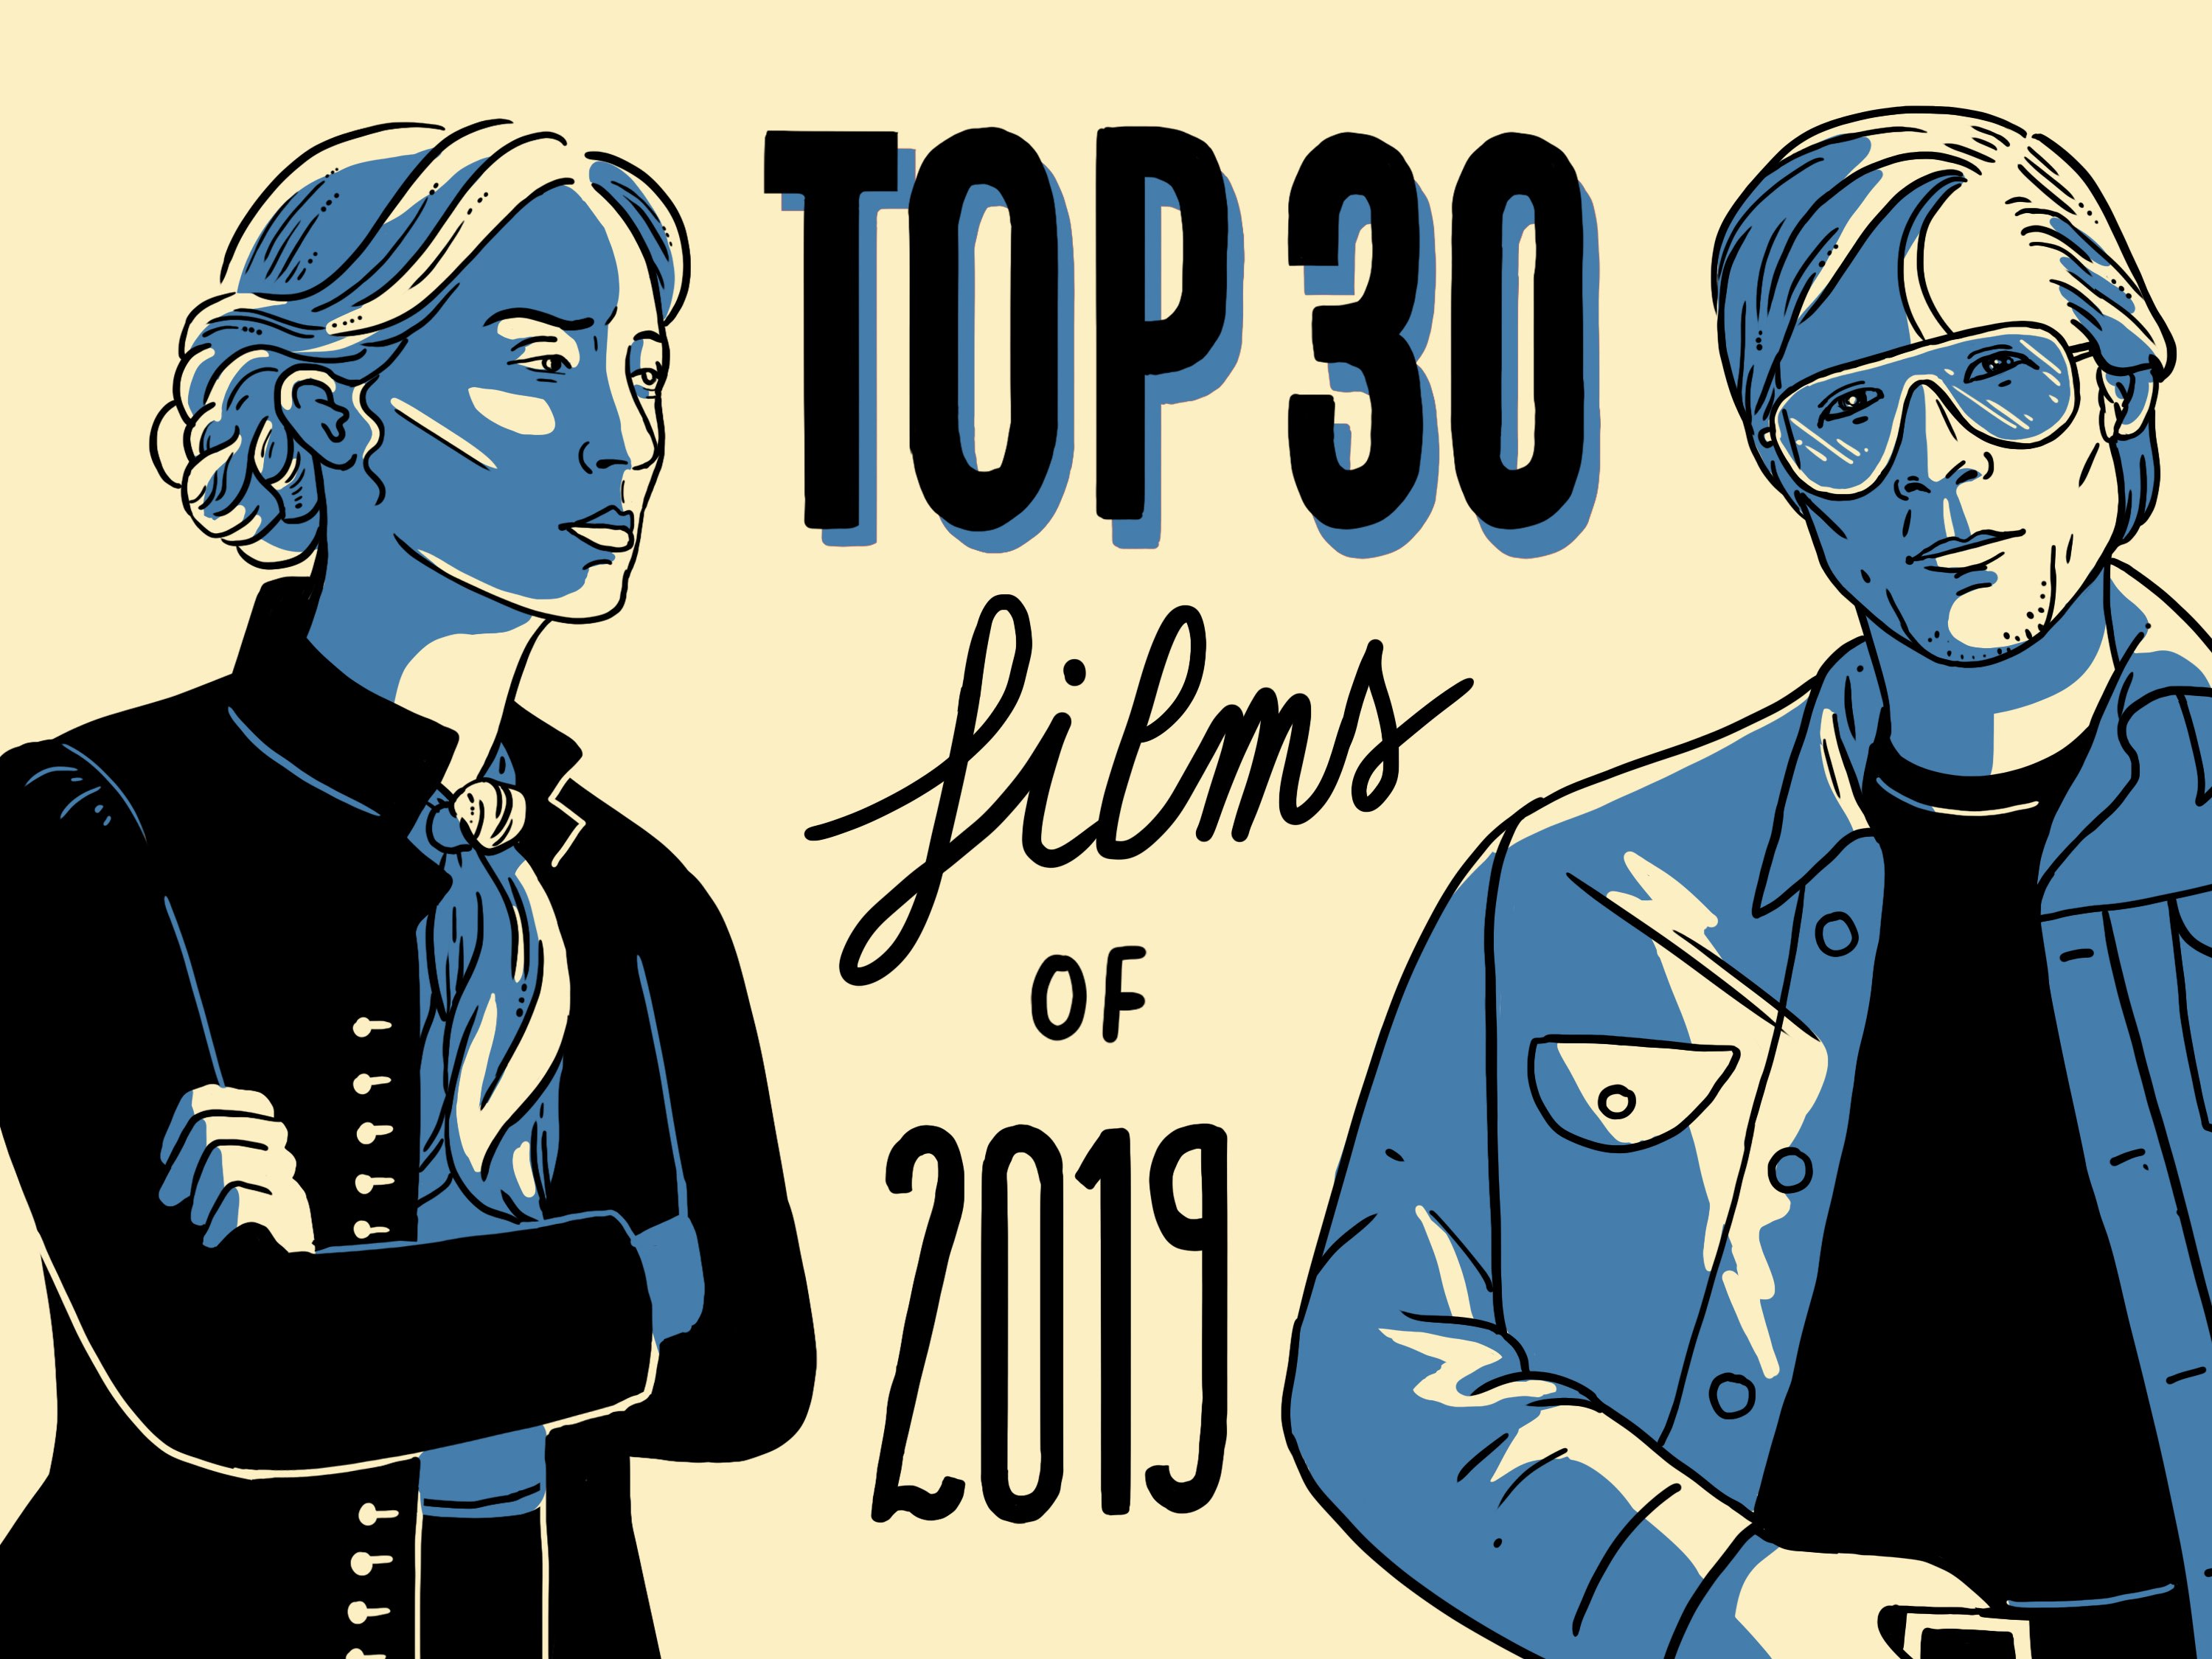 The 30 best films of 2019